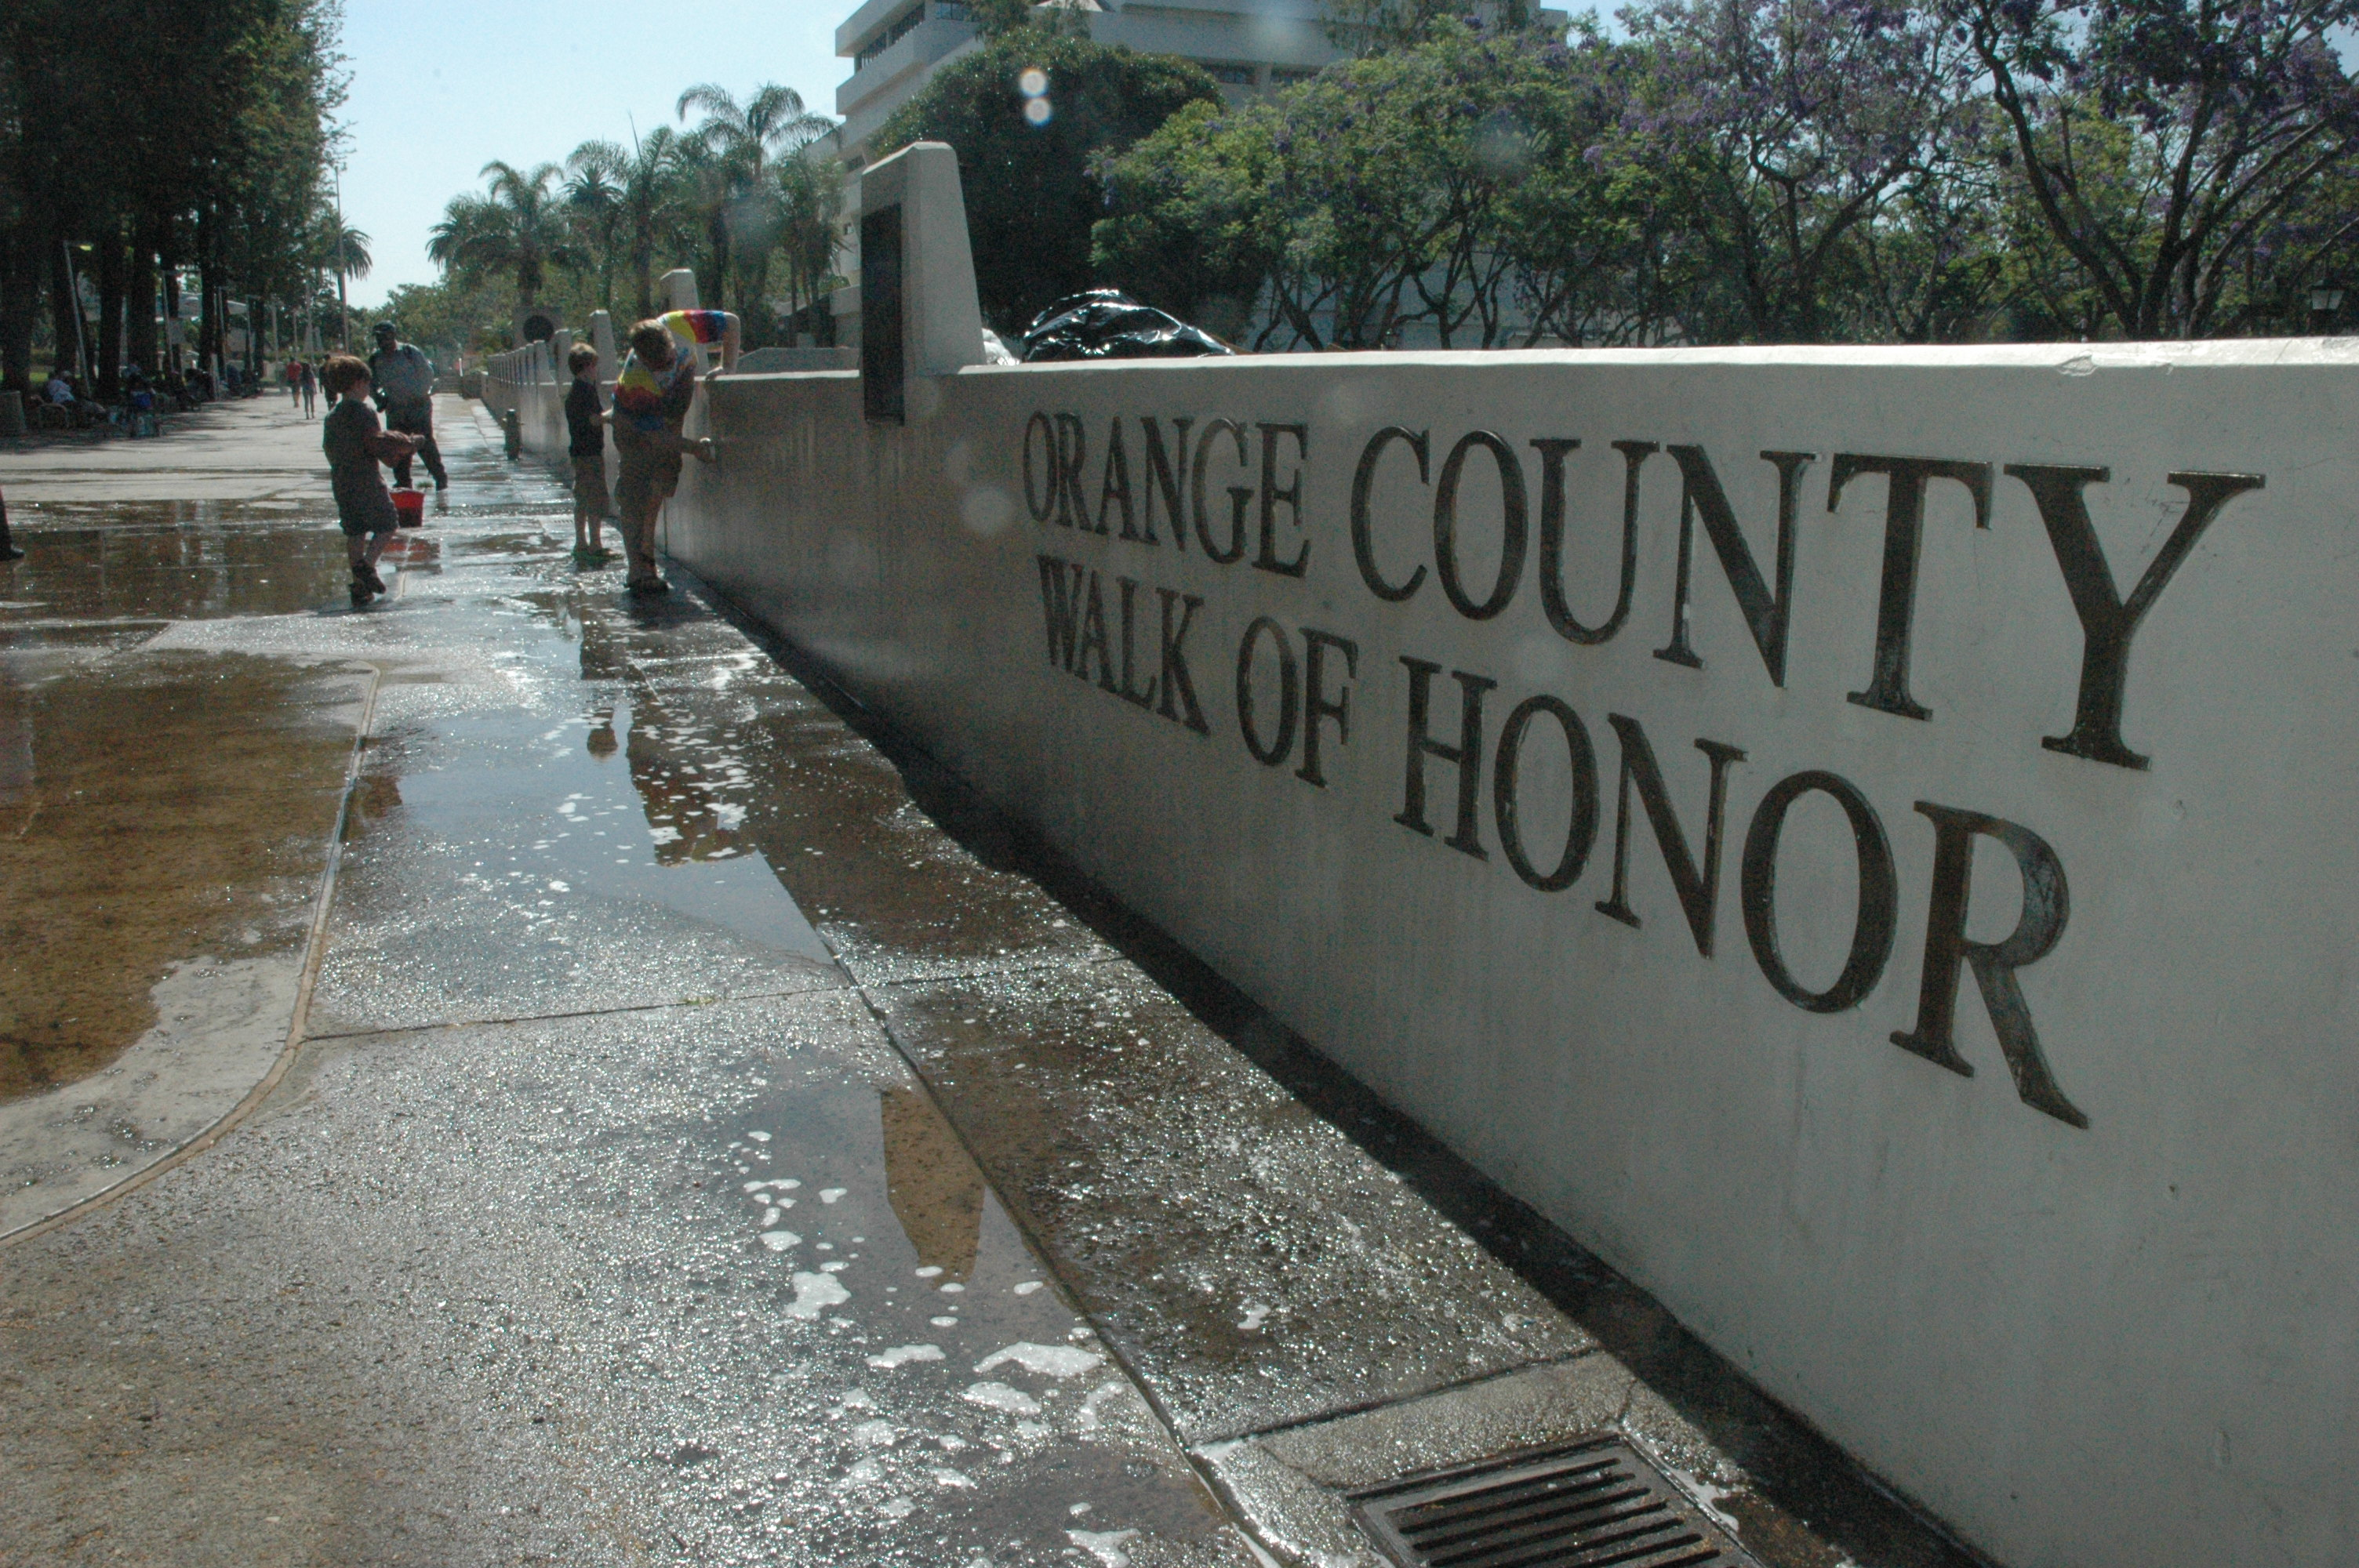 Cleaning OC Walk of Honor